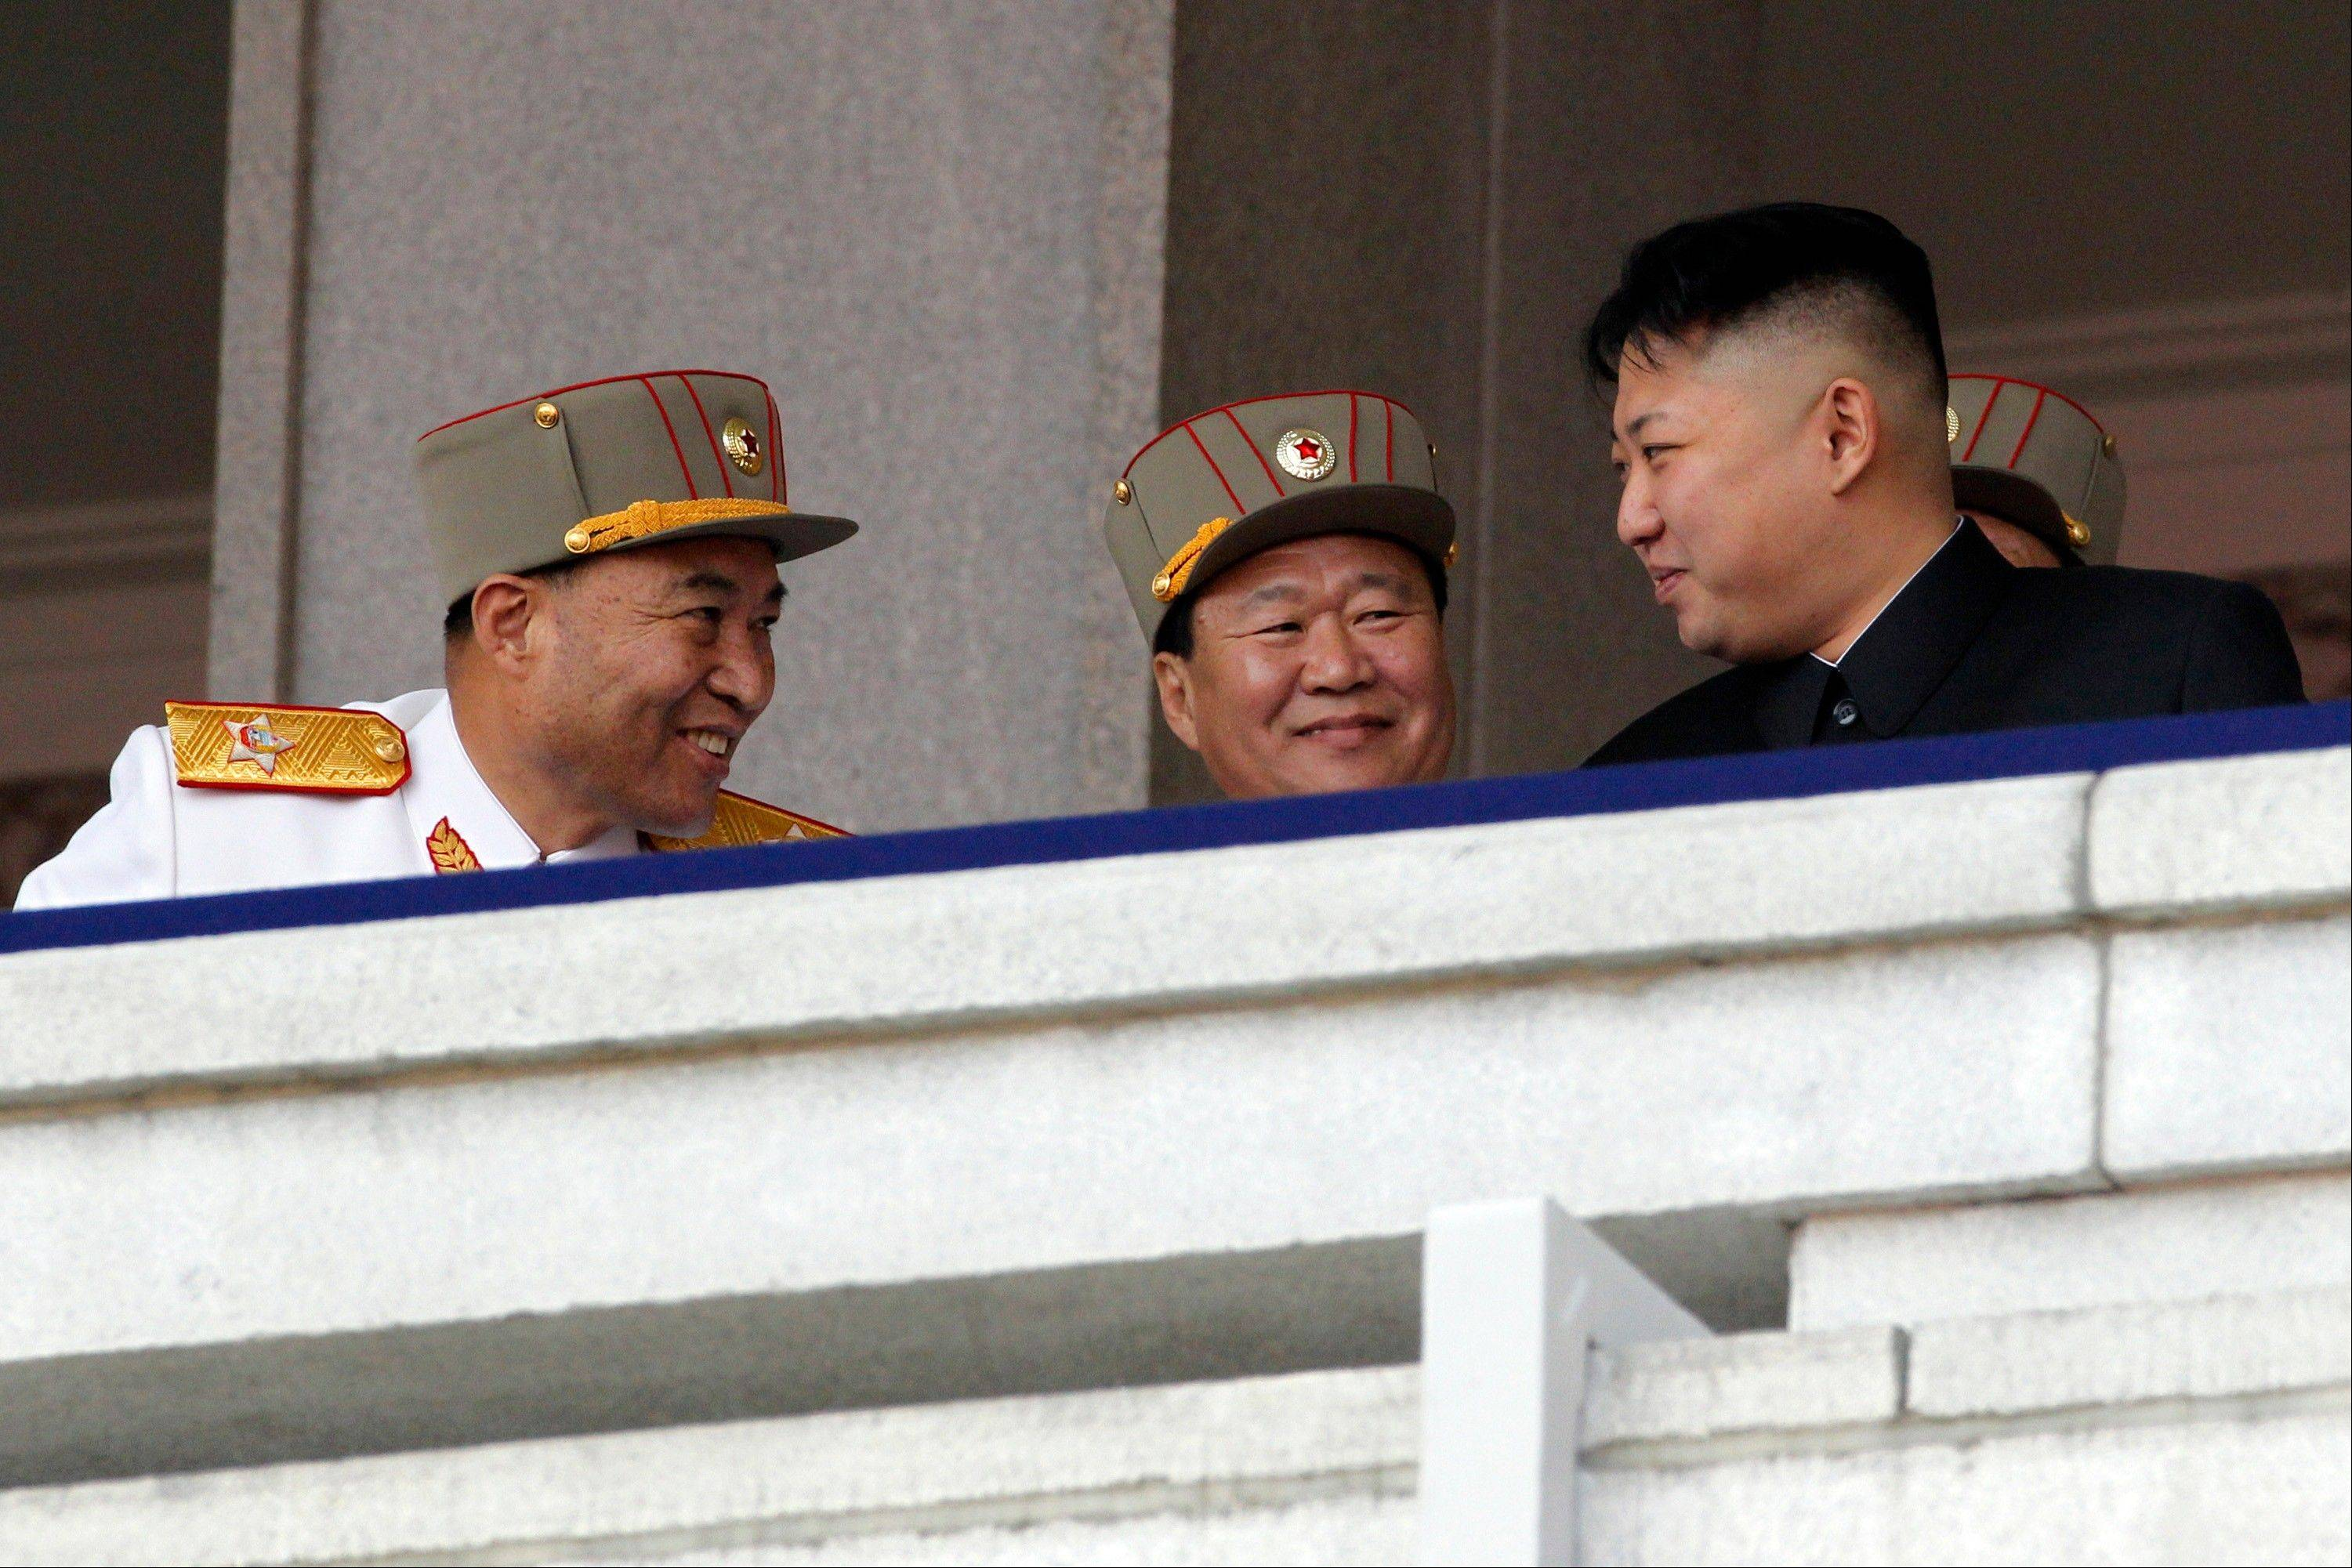 In this photo taken Sunday, April 15, North Korean leader Kim Jong Un, right, looks over at North Korean People's Army senior officers, Vice Marshal and Vice Chairman of the Central Military Commission Choe Ryong Hae, center, and Vice Marshal and the military's General Staff Chief Ri Yong Ho, left, during a mass military parade in Kim Il Sung Square to celebrate the centenary of the birth of his grandfather, national founder Kim Il Sung in Pyongyang, North Korea. North Korea said Monday, July 16, 2012 it has relieved Ri Yong Ho from all posts because of illness.